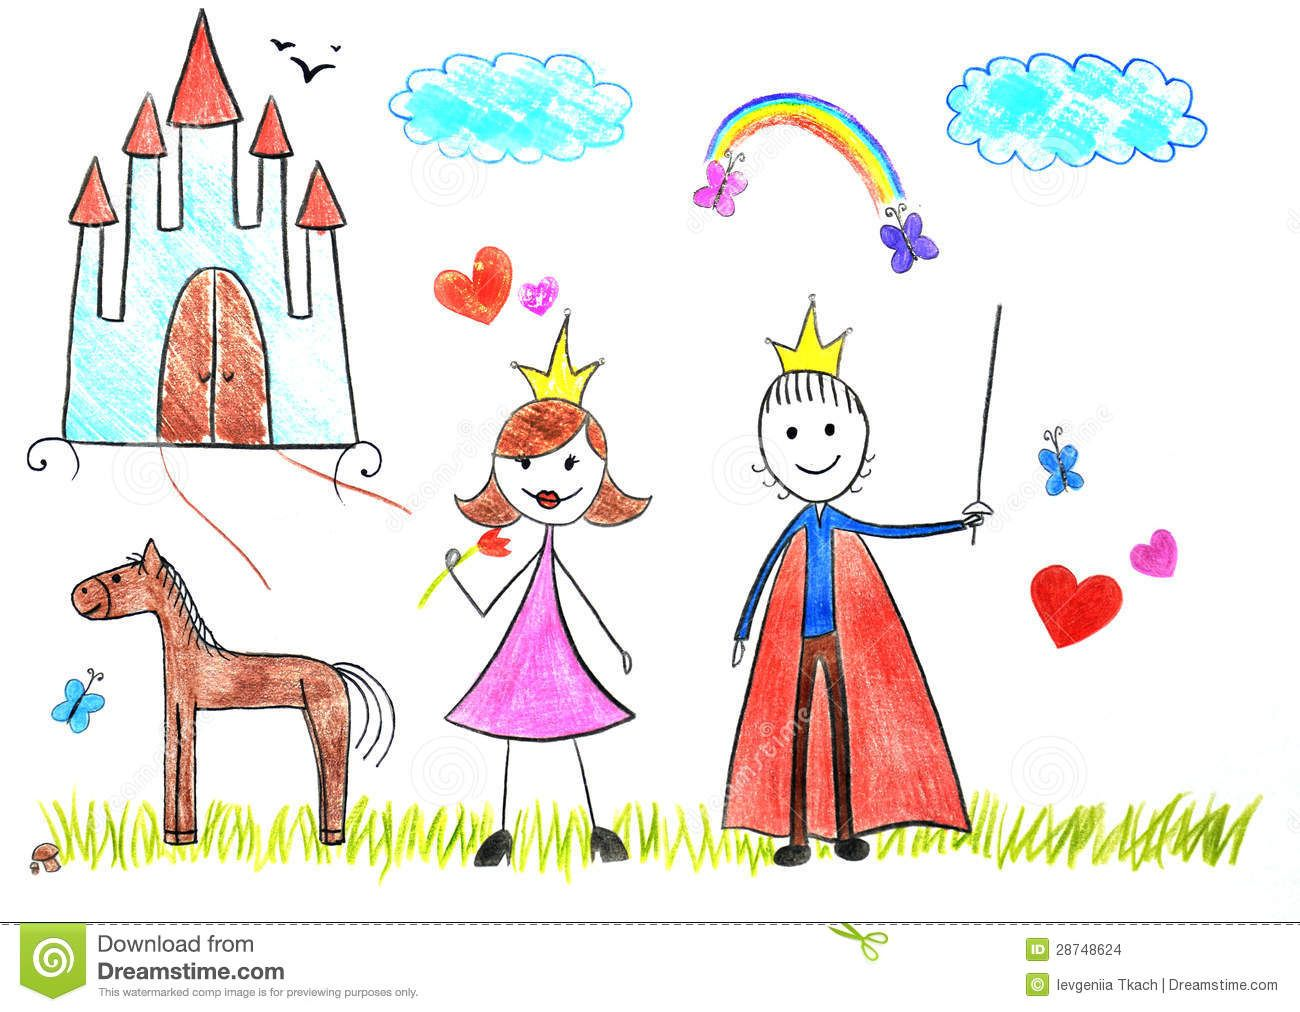 simple kids drawings princess google search - Images Of Drawings For Kids